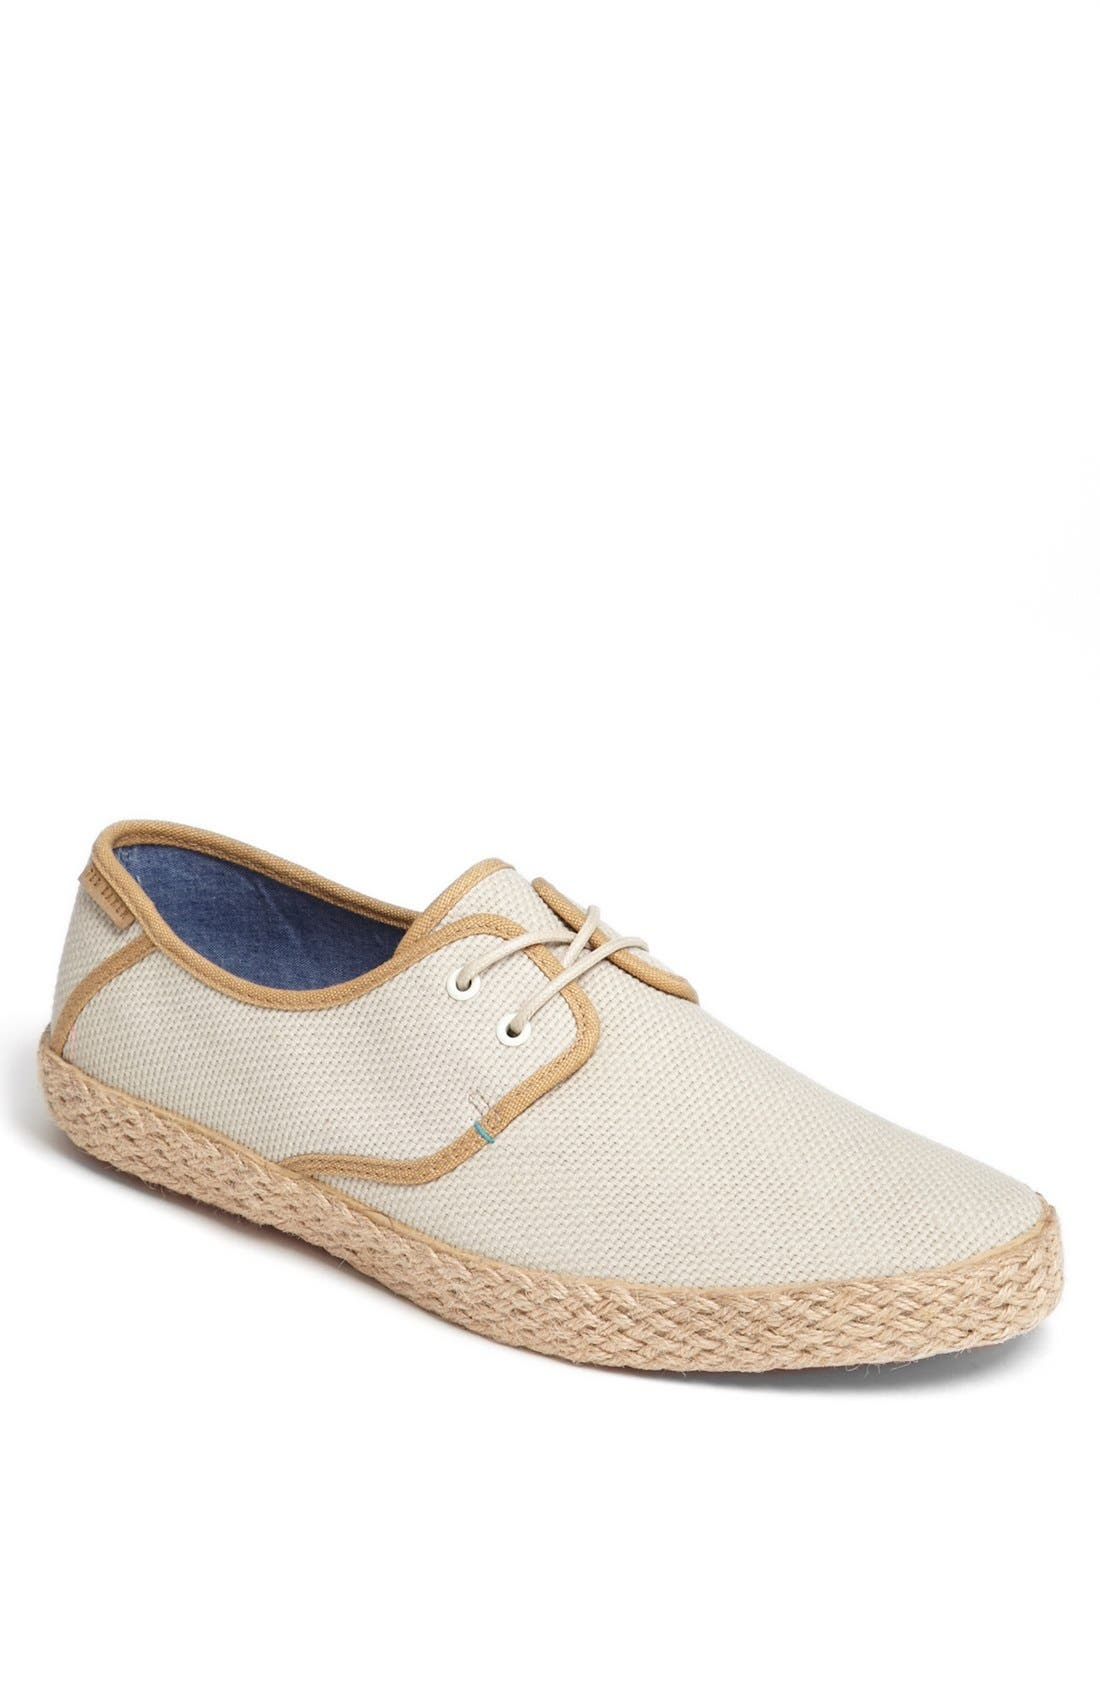 Main Image - Ted Baker London 'Drilll 2' Espadrille Sneaker